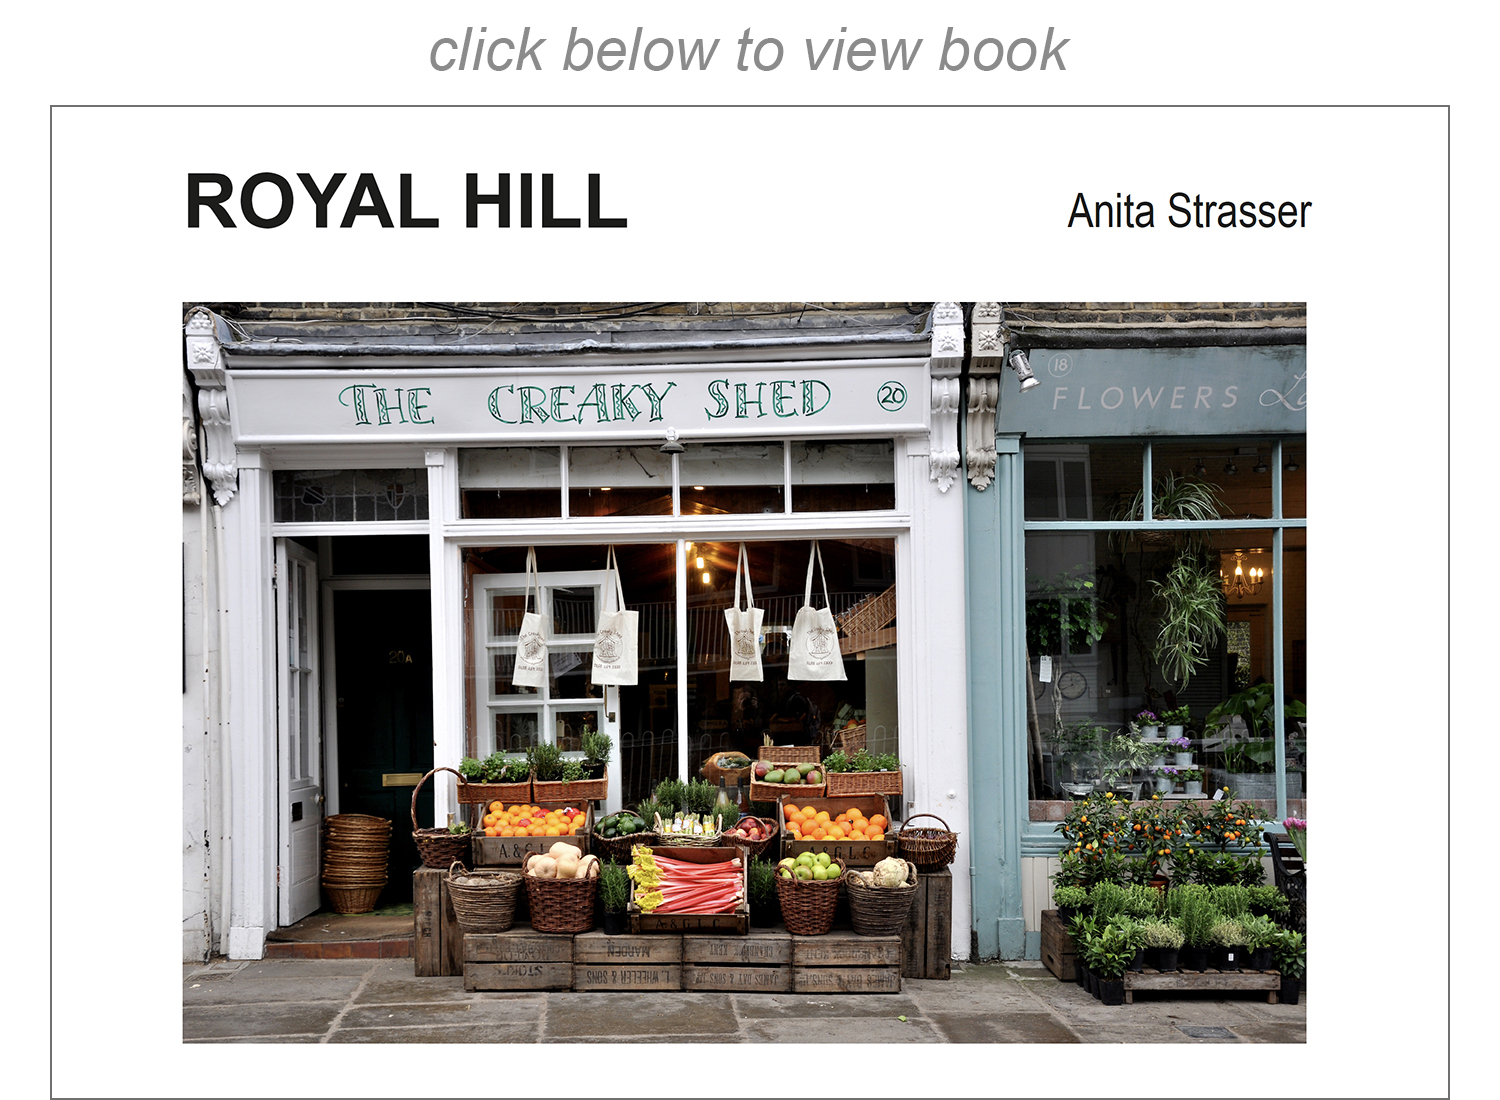 Royal Hill - book